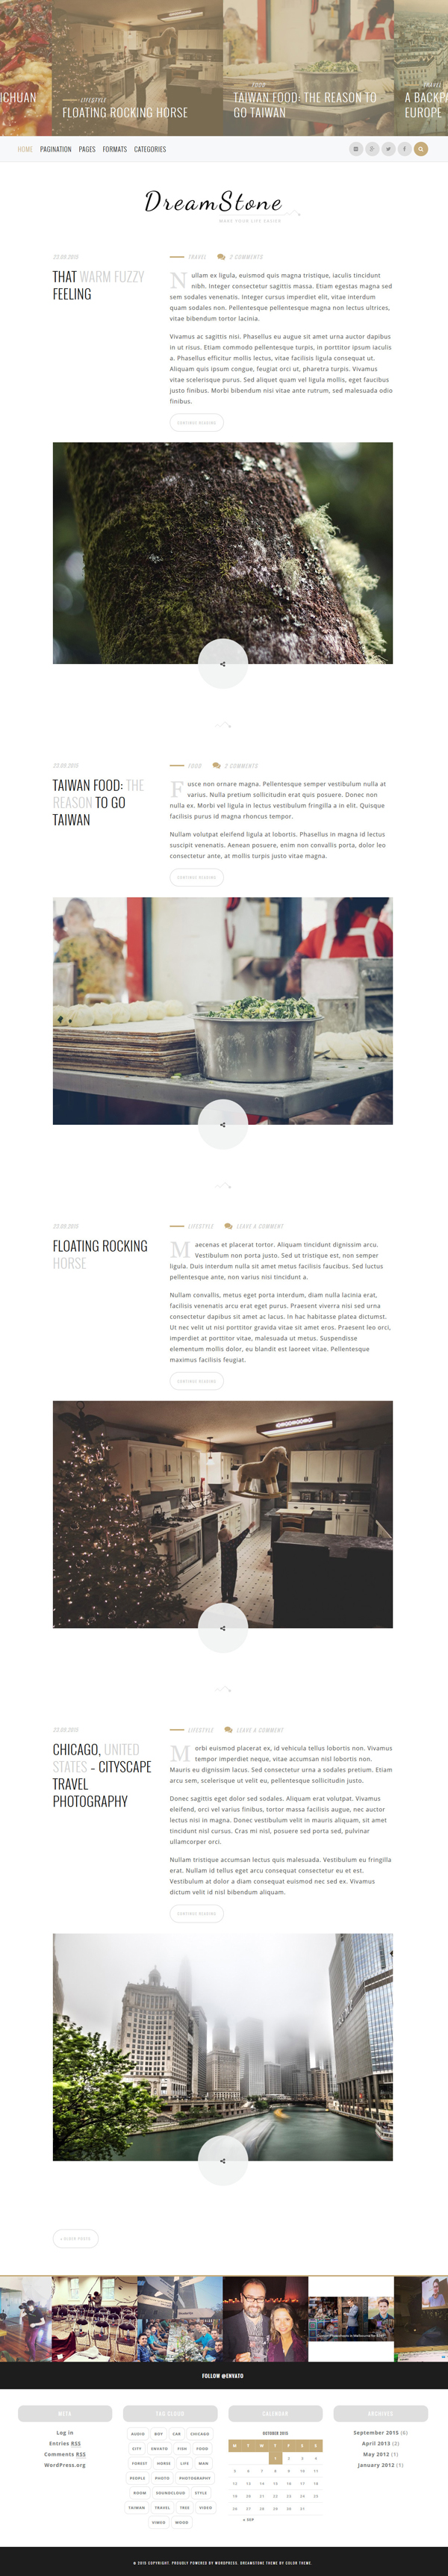 DreamStone - Personal WordPress Blog Theme